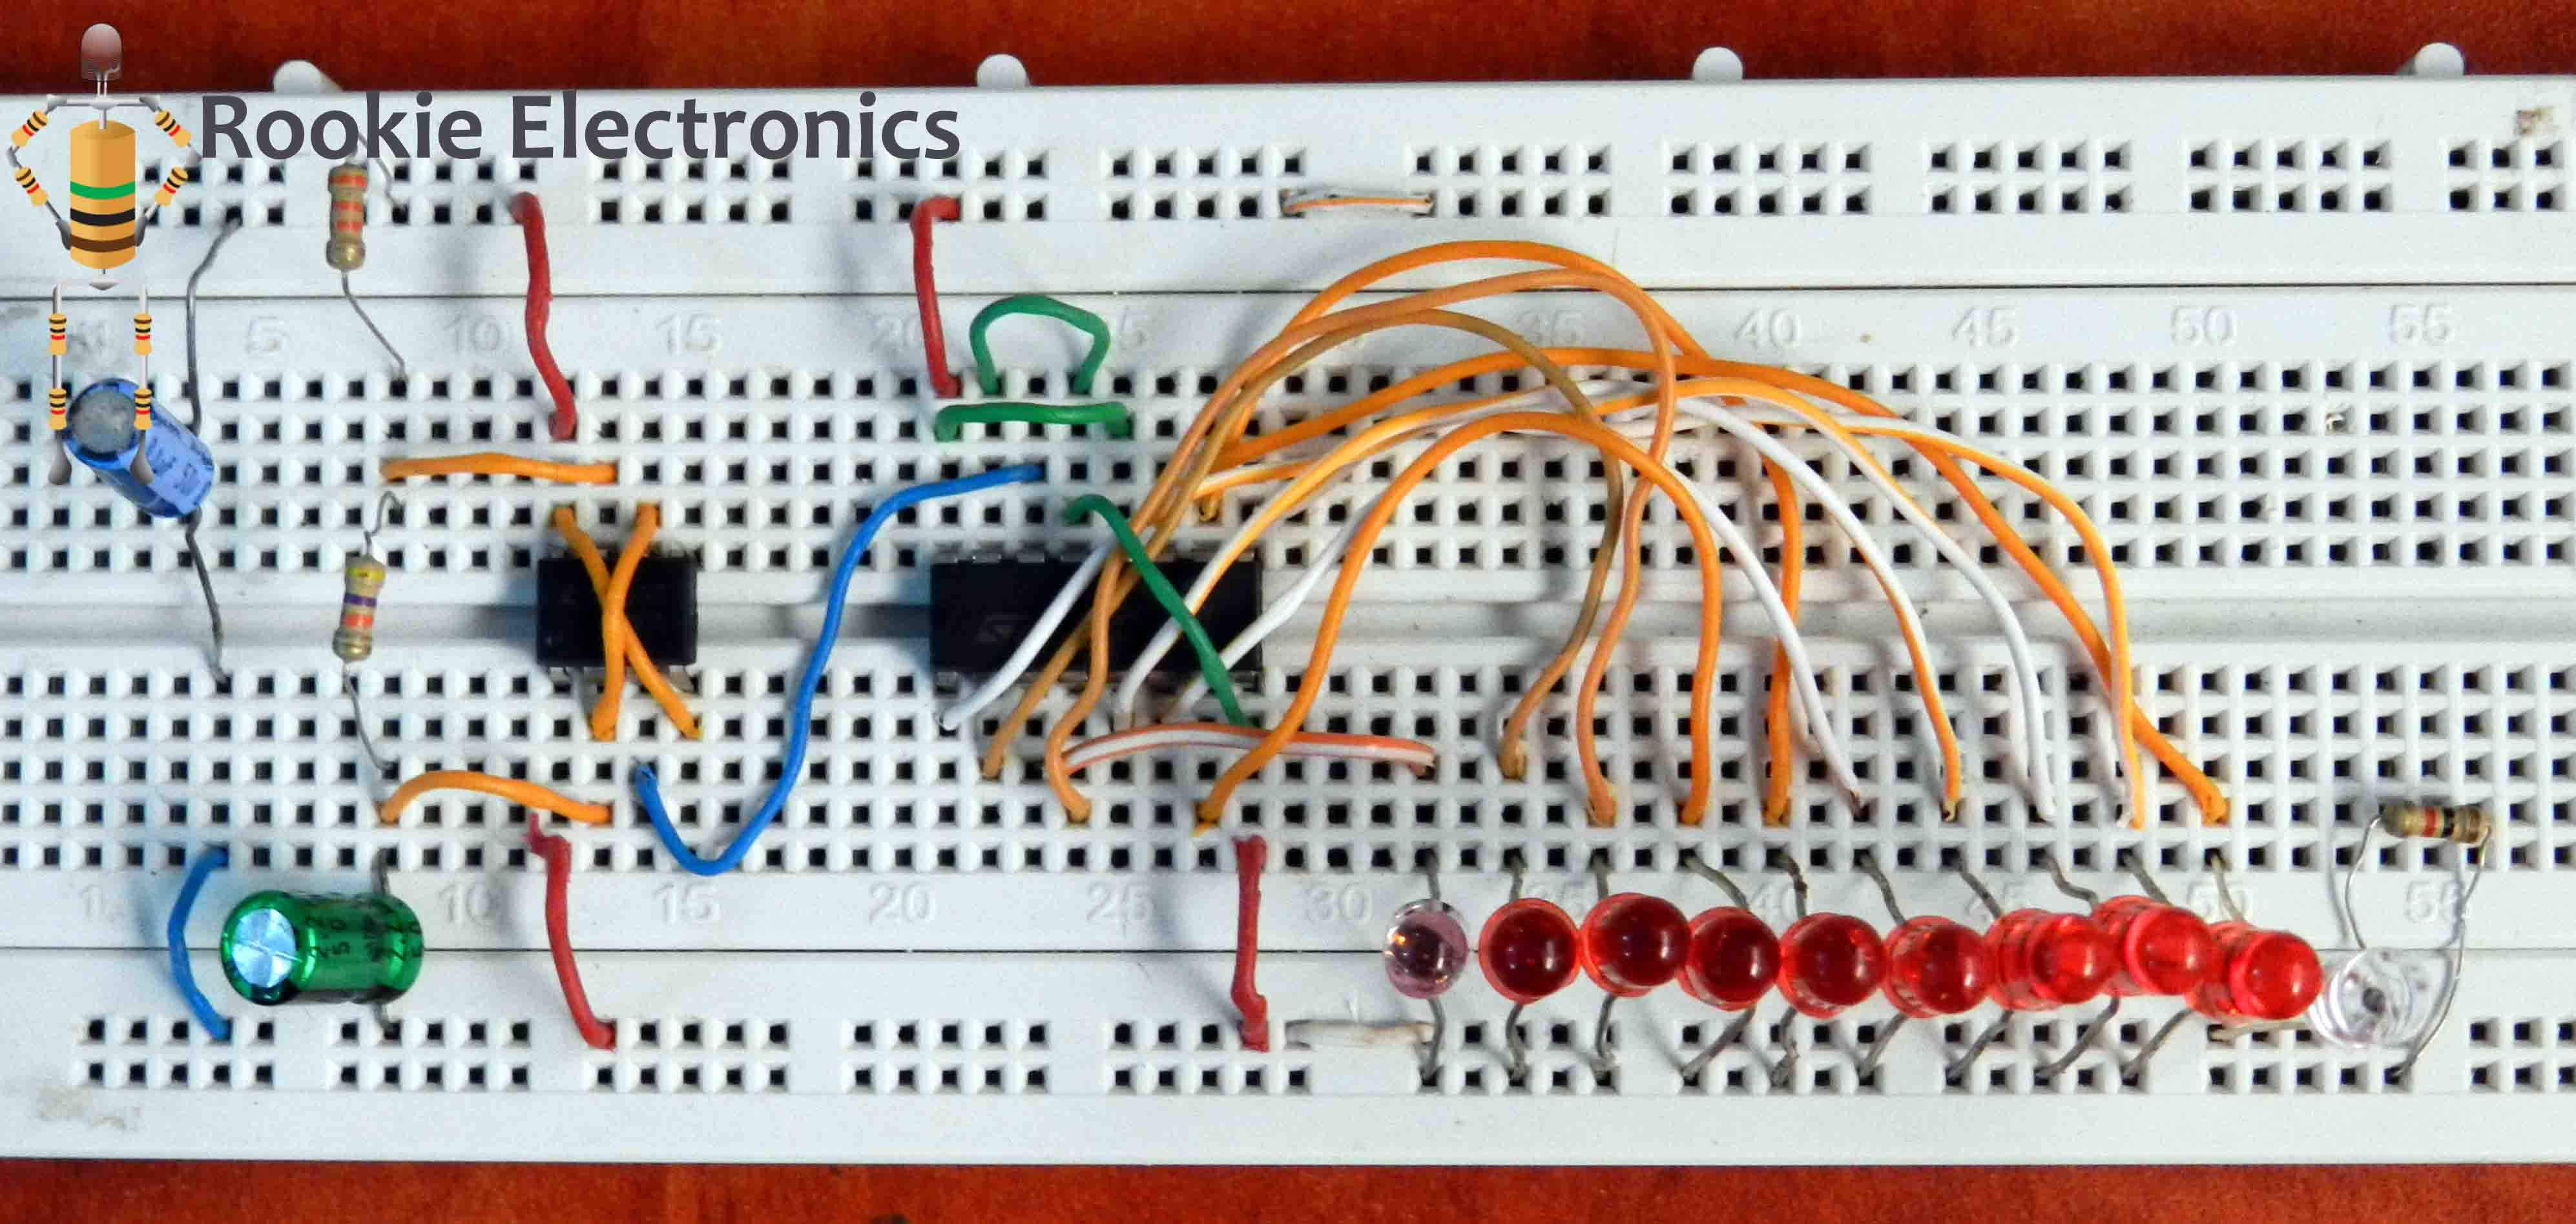 Led Chaser Rookie Electronics Robotics Projects Breadboard Circuit Detail Diagram Bread Board Arrangement Ic Pin Configuration